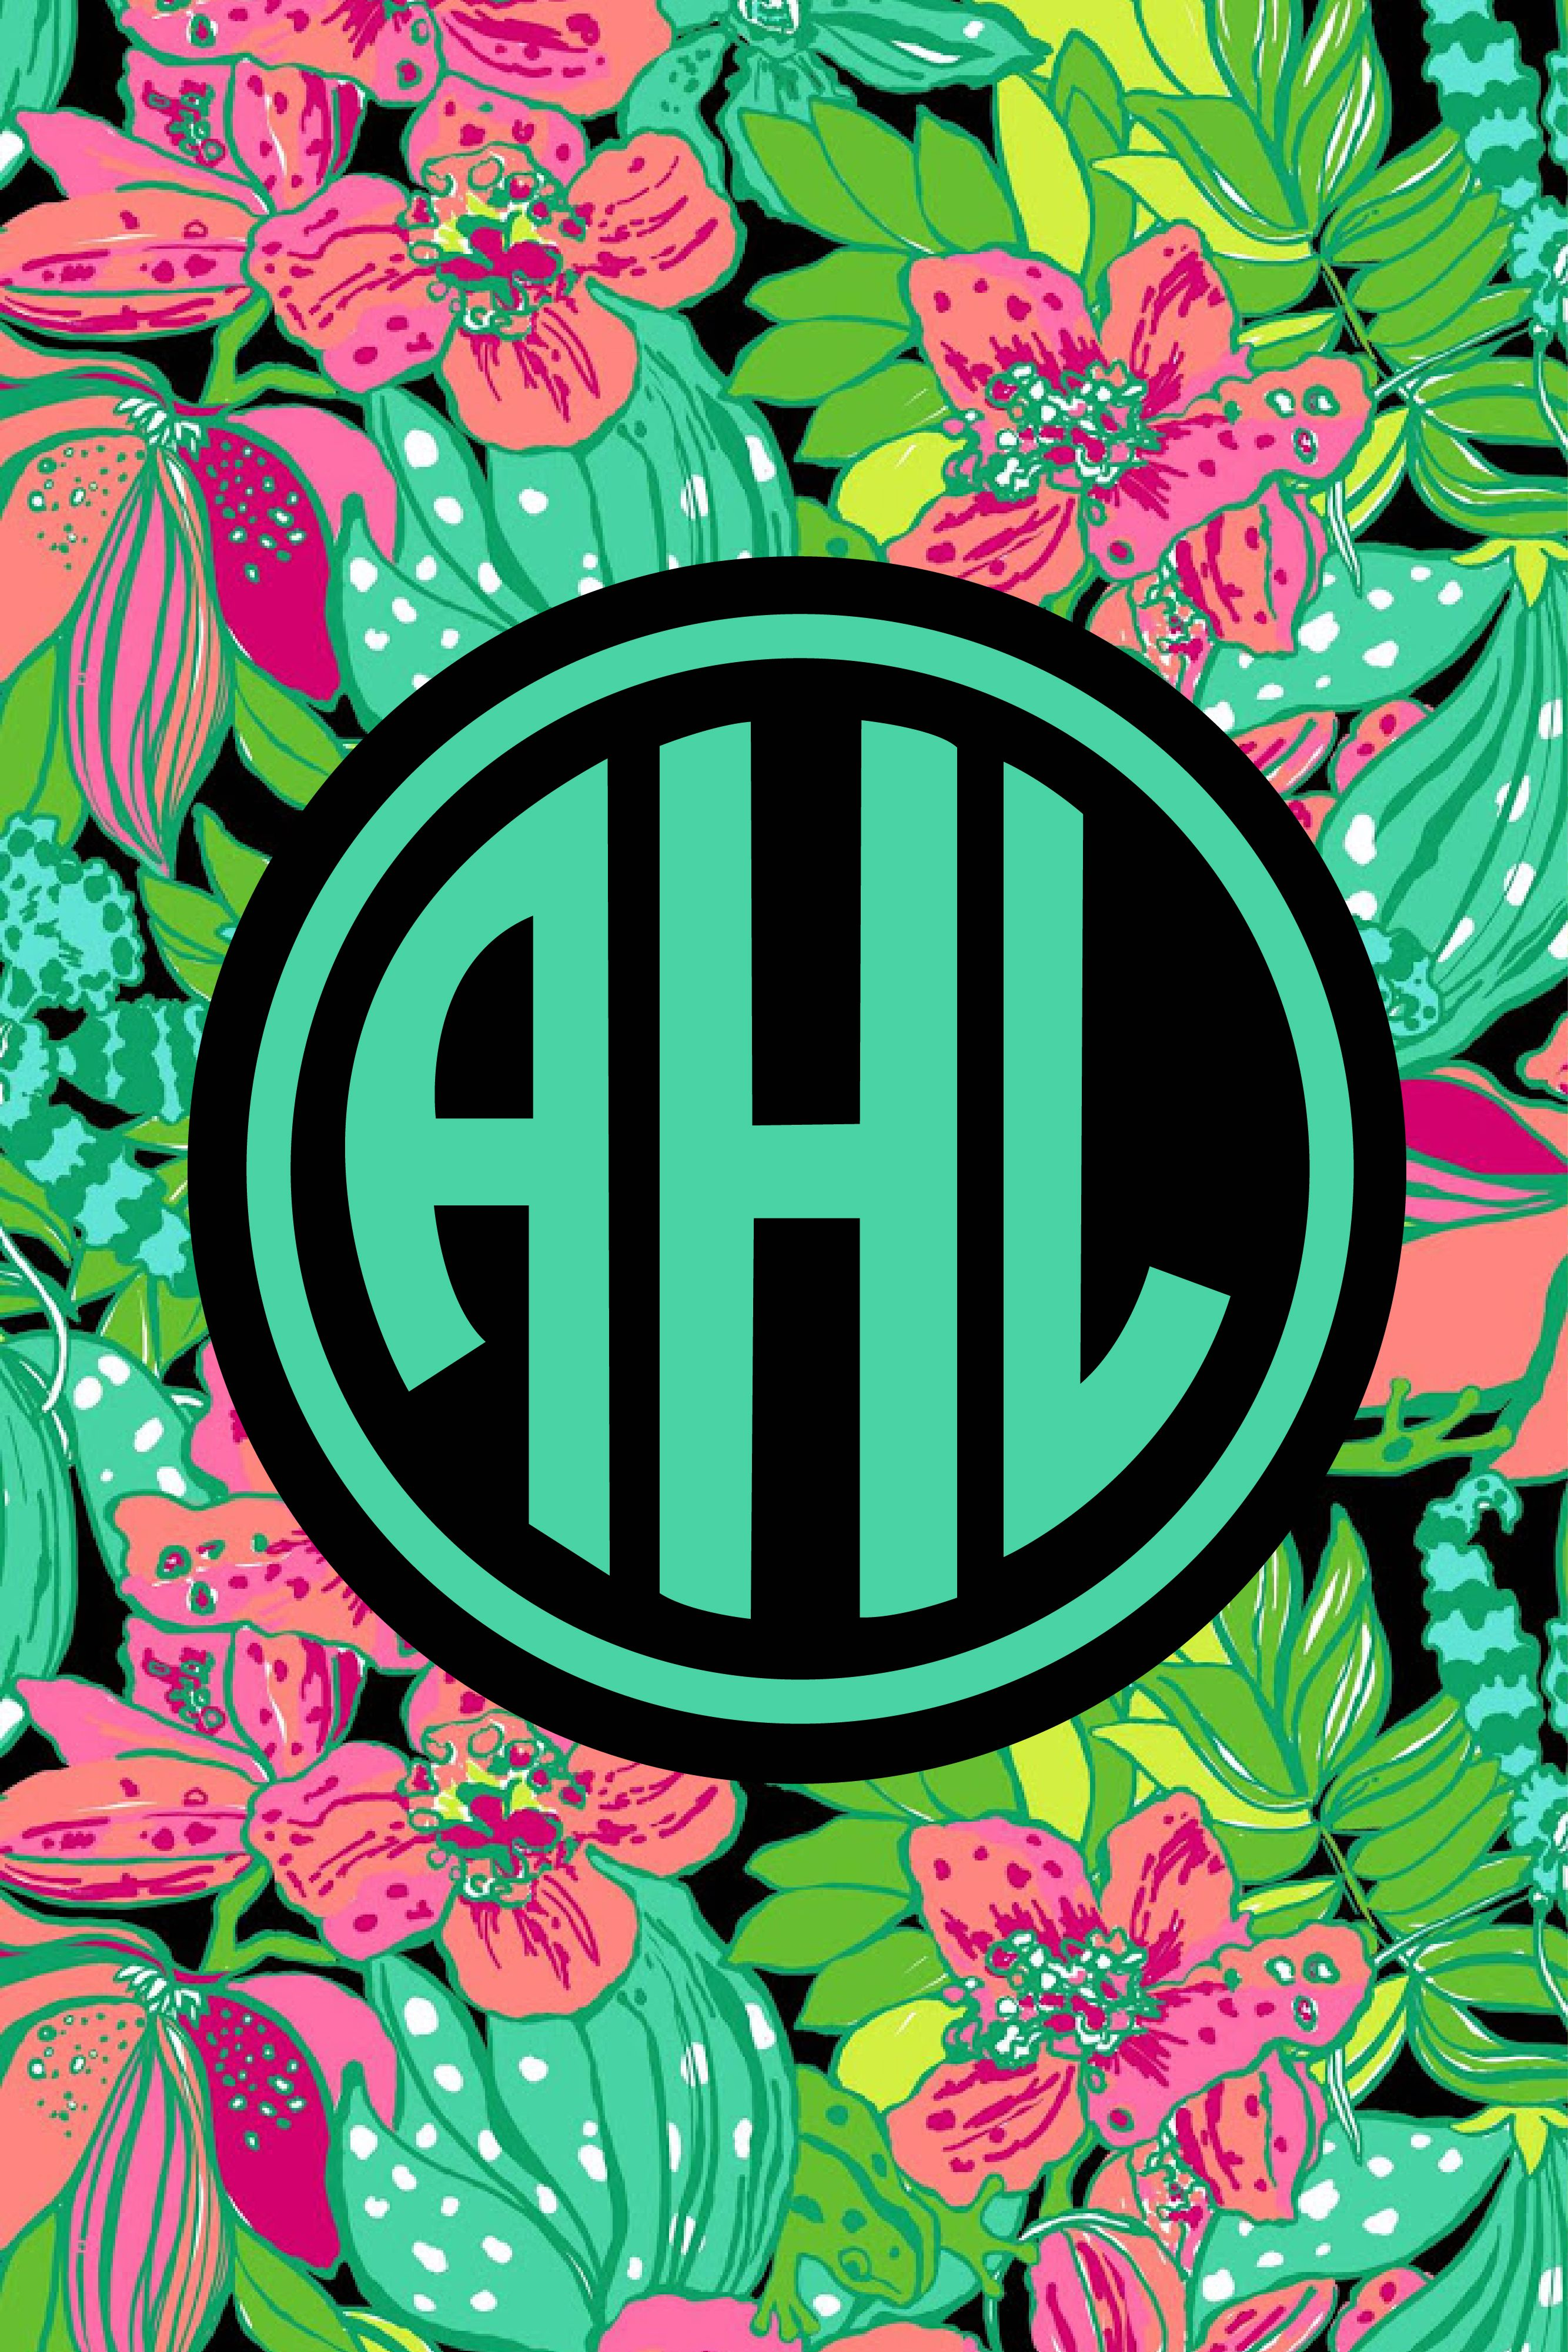 Lilly Pulitzer monogram iPhone wallpaper! Choose from lots